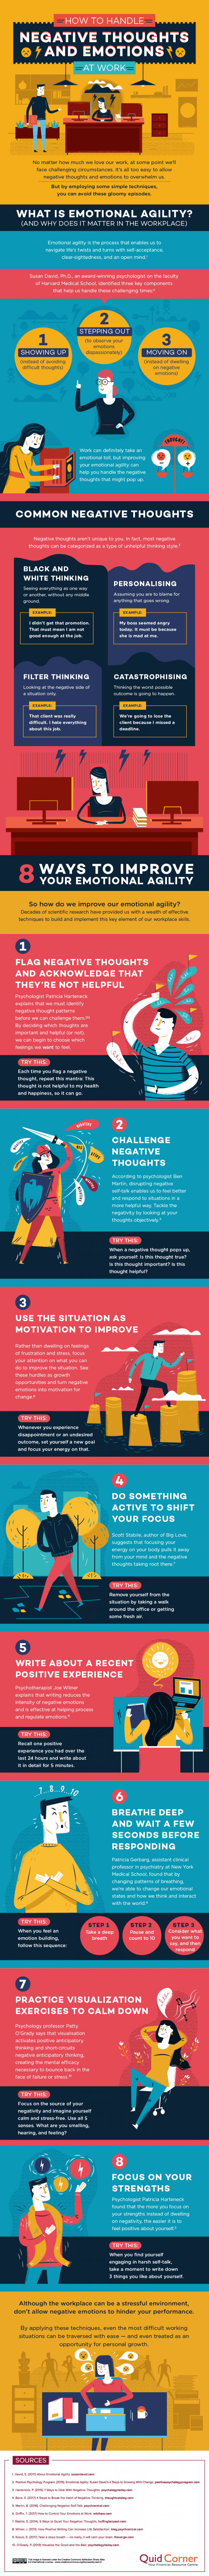 an image of different techniques to handle negative thoughts and emotions at work